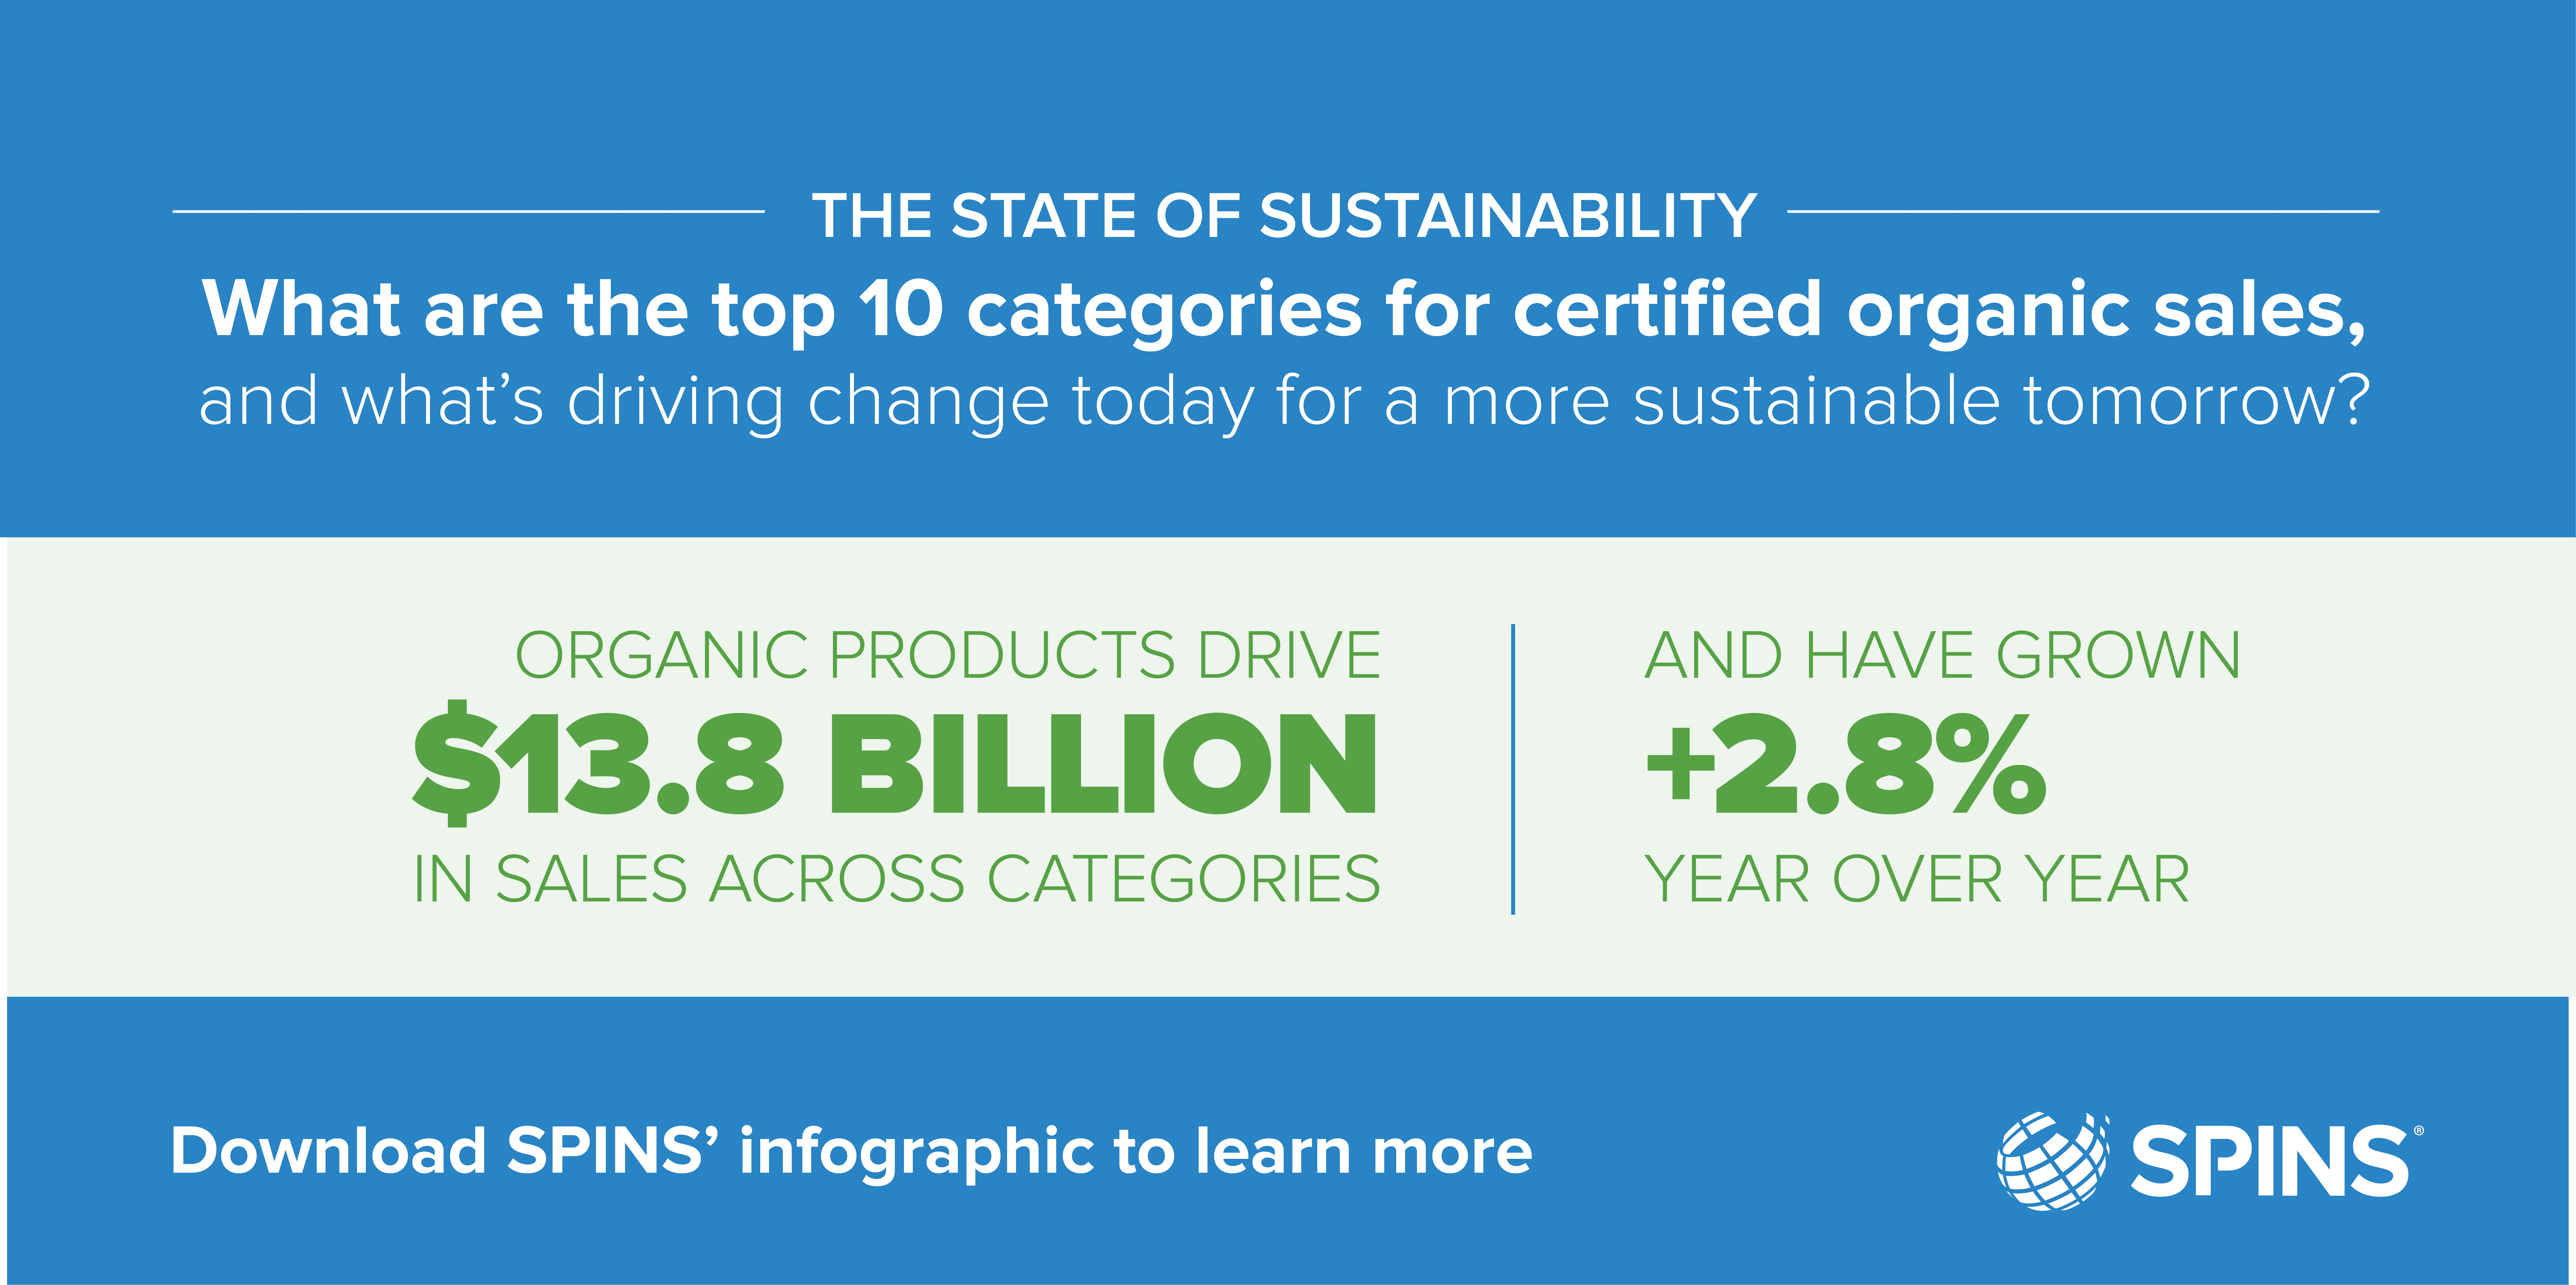 The state of sustainability infographic teaser image